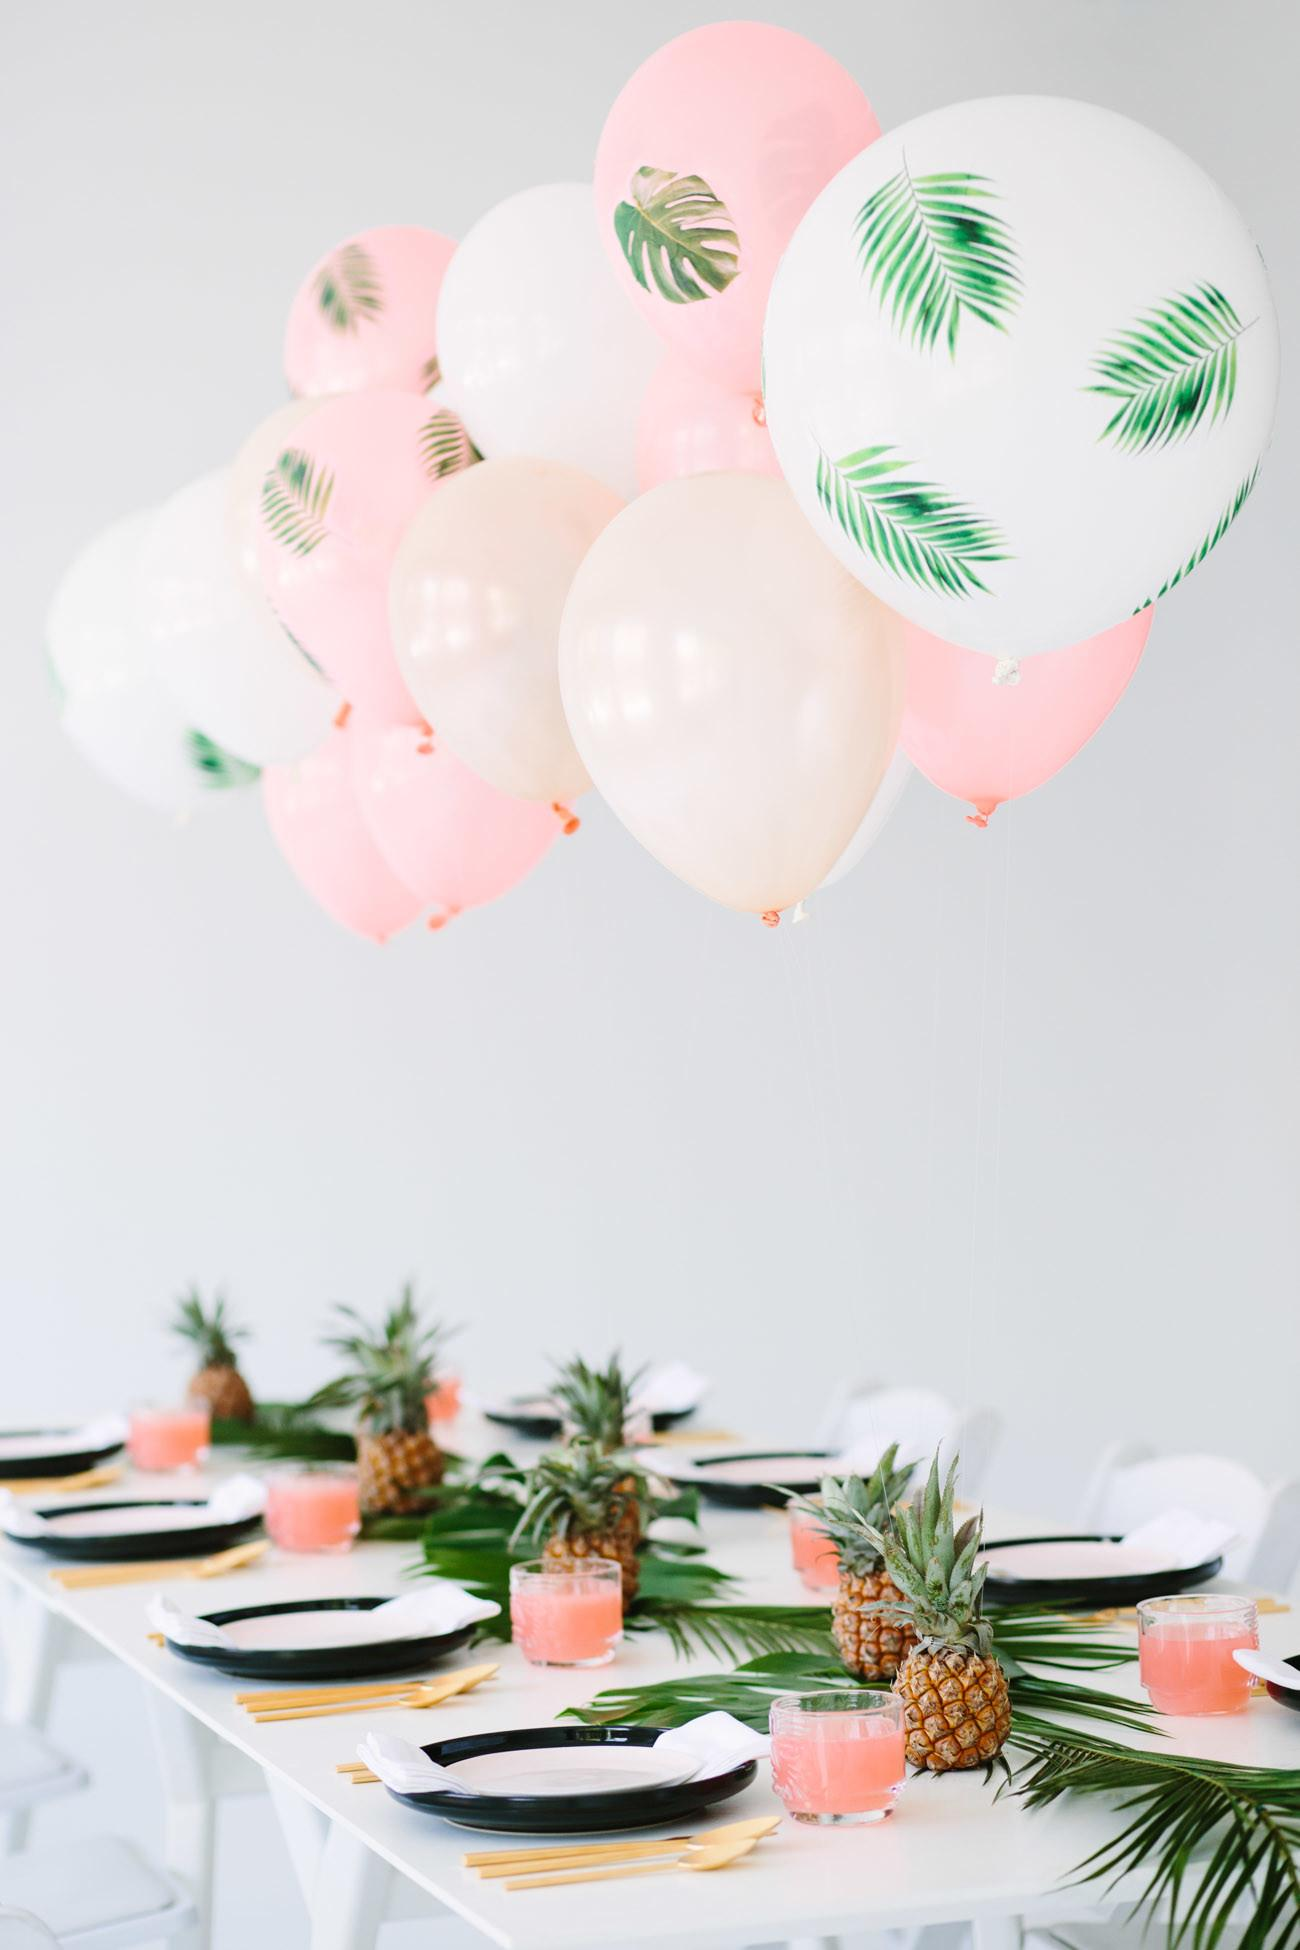 Table Style Festive Concepts Spring Entertaining